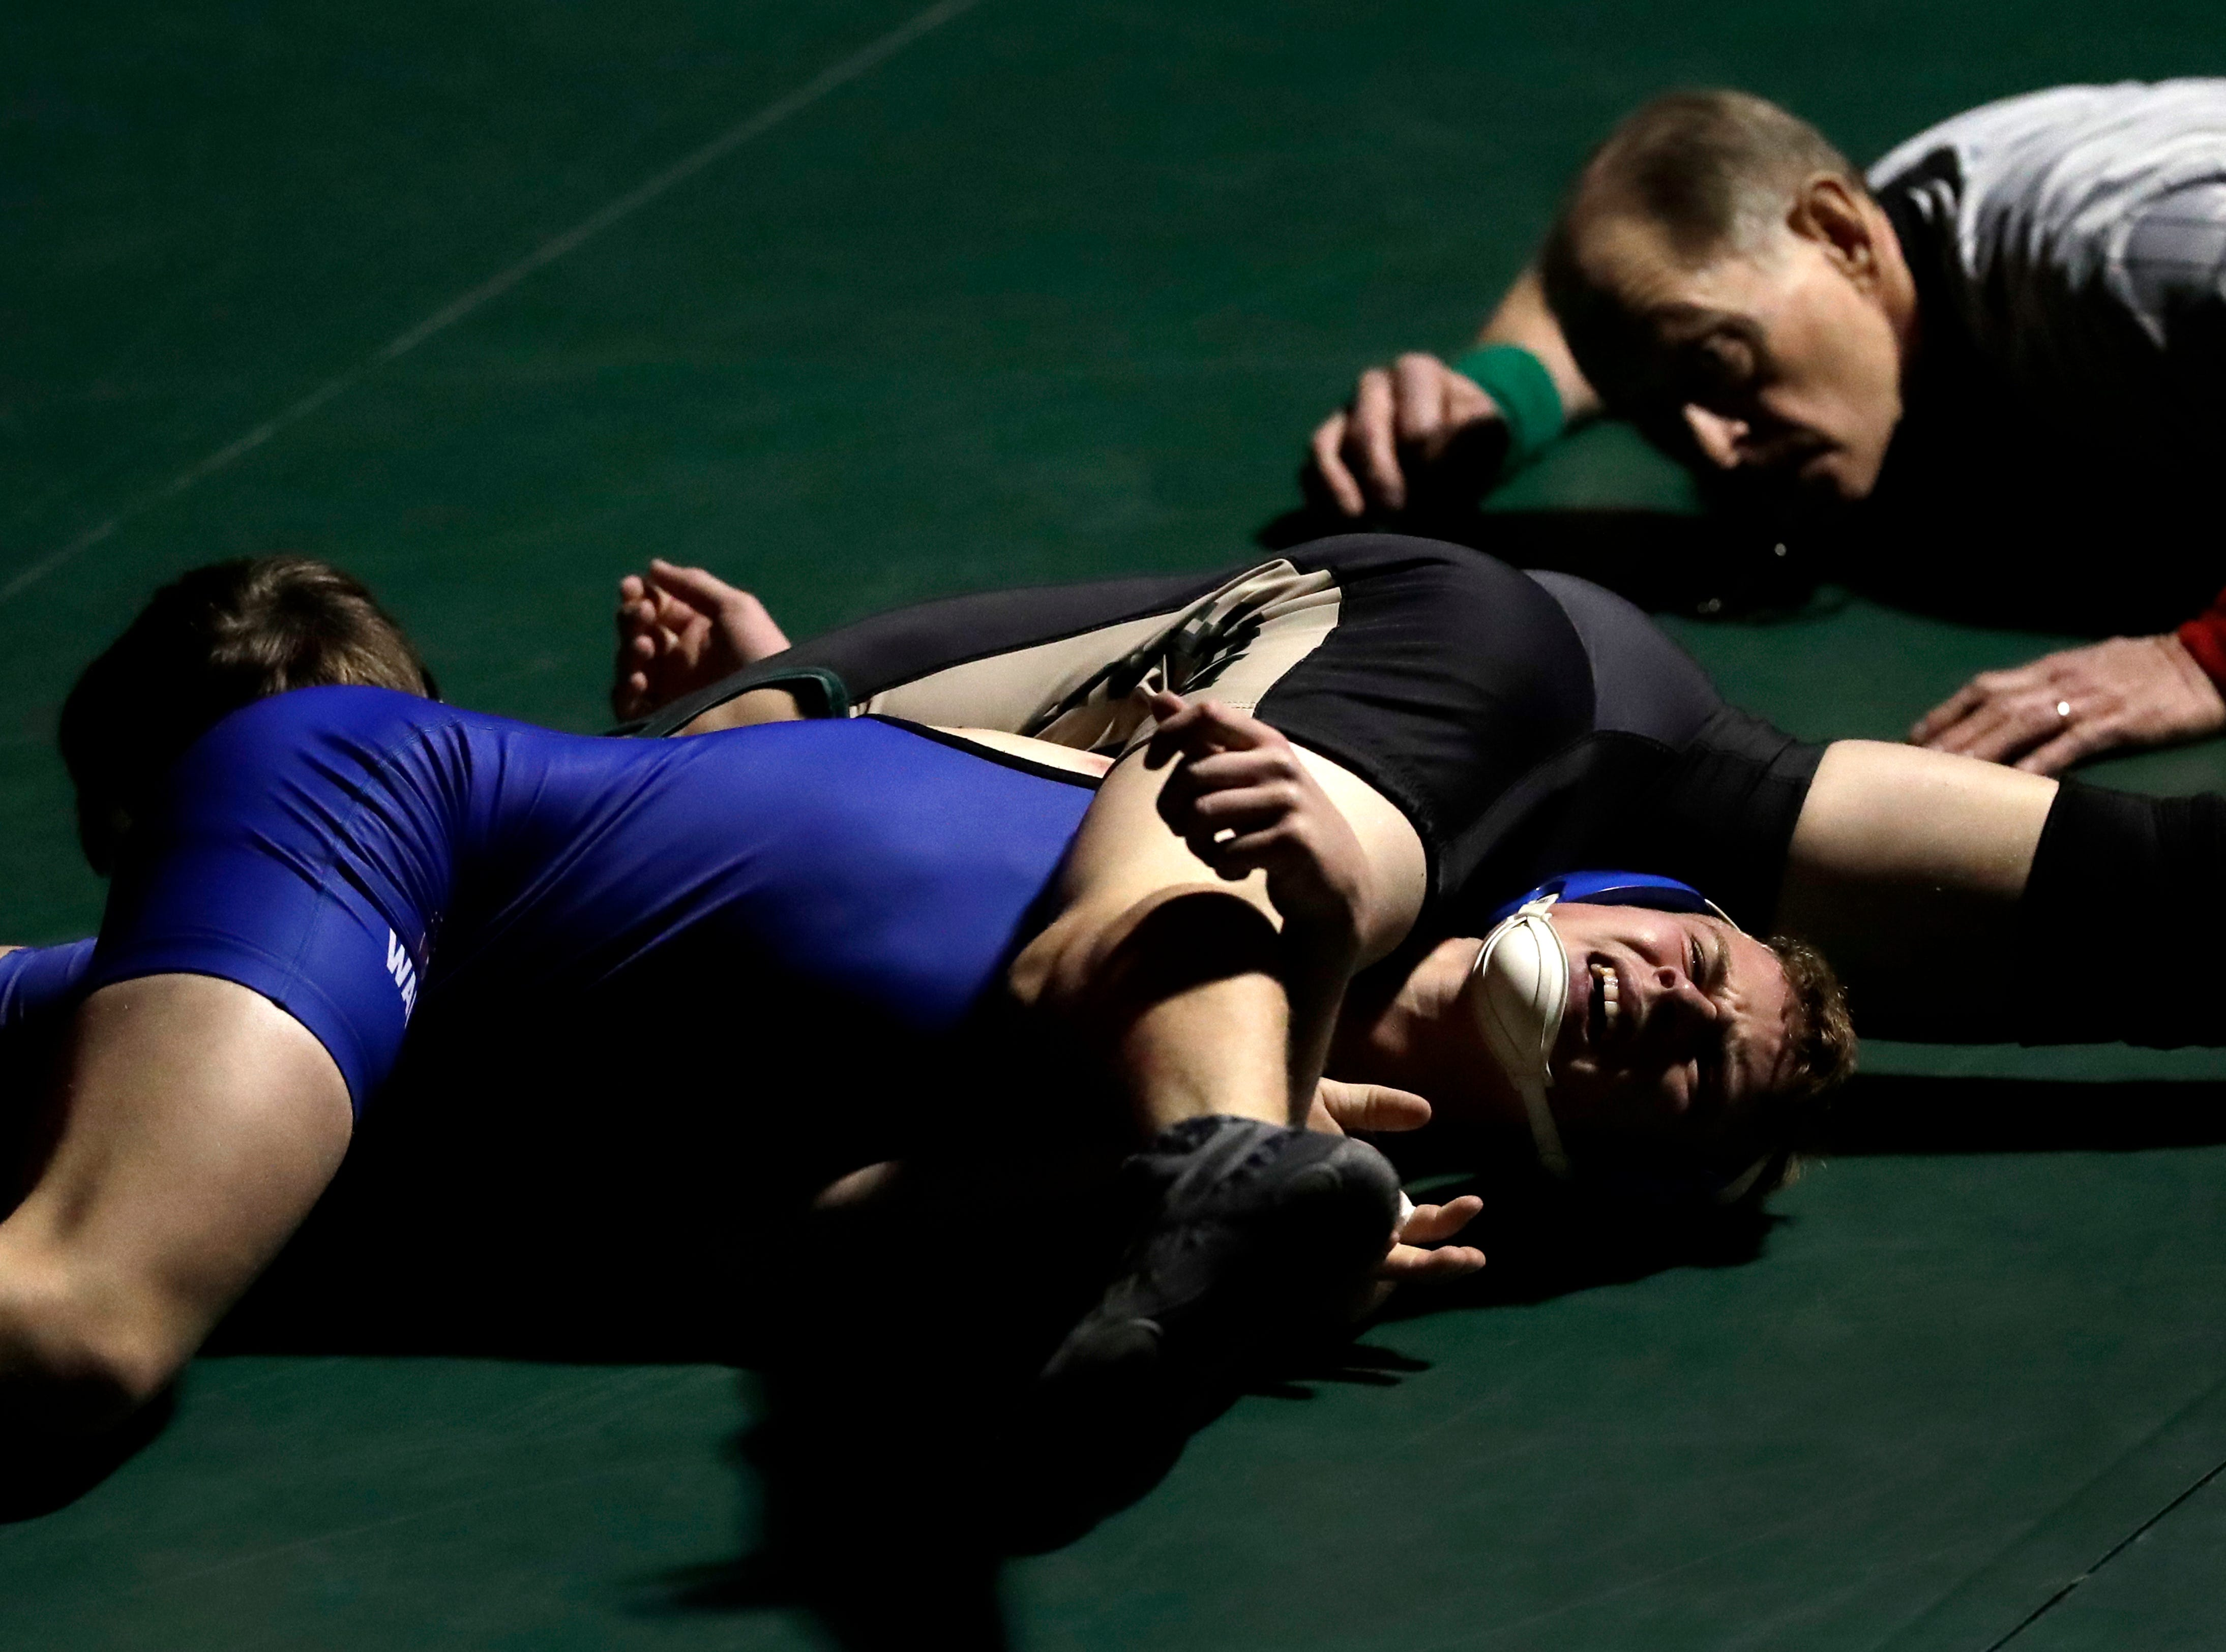 Freedom High School's Ben Bredael, top, wrestles against Waupaca High School's Devan Eisentraut during their 138-lb wrestling match Thursday, December 6, 2018, in Freedom, Wis. 